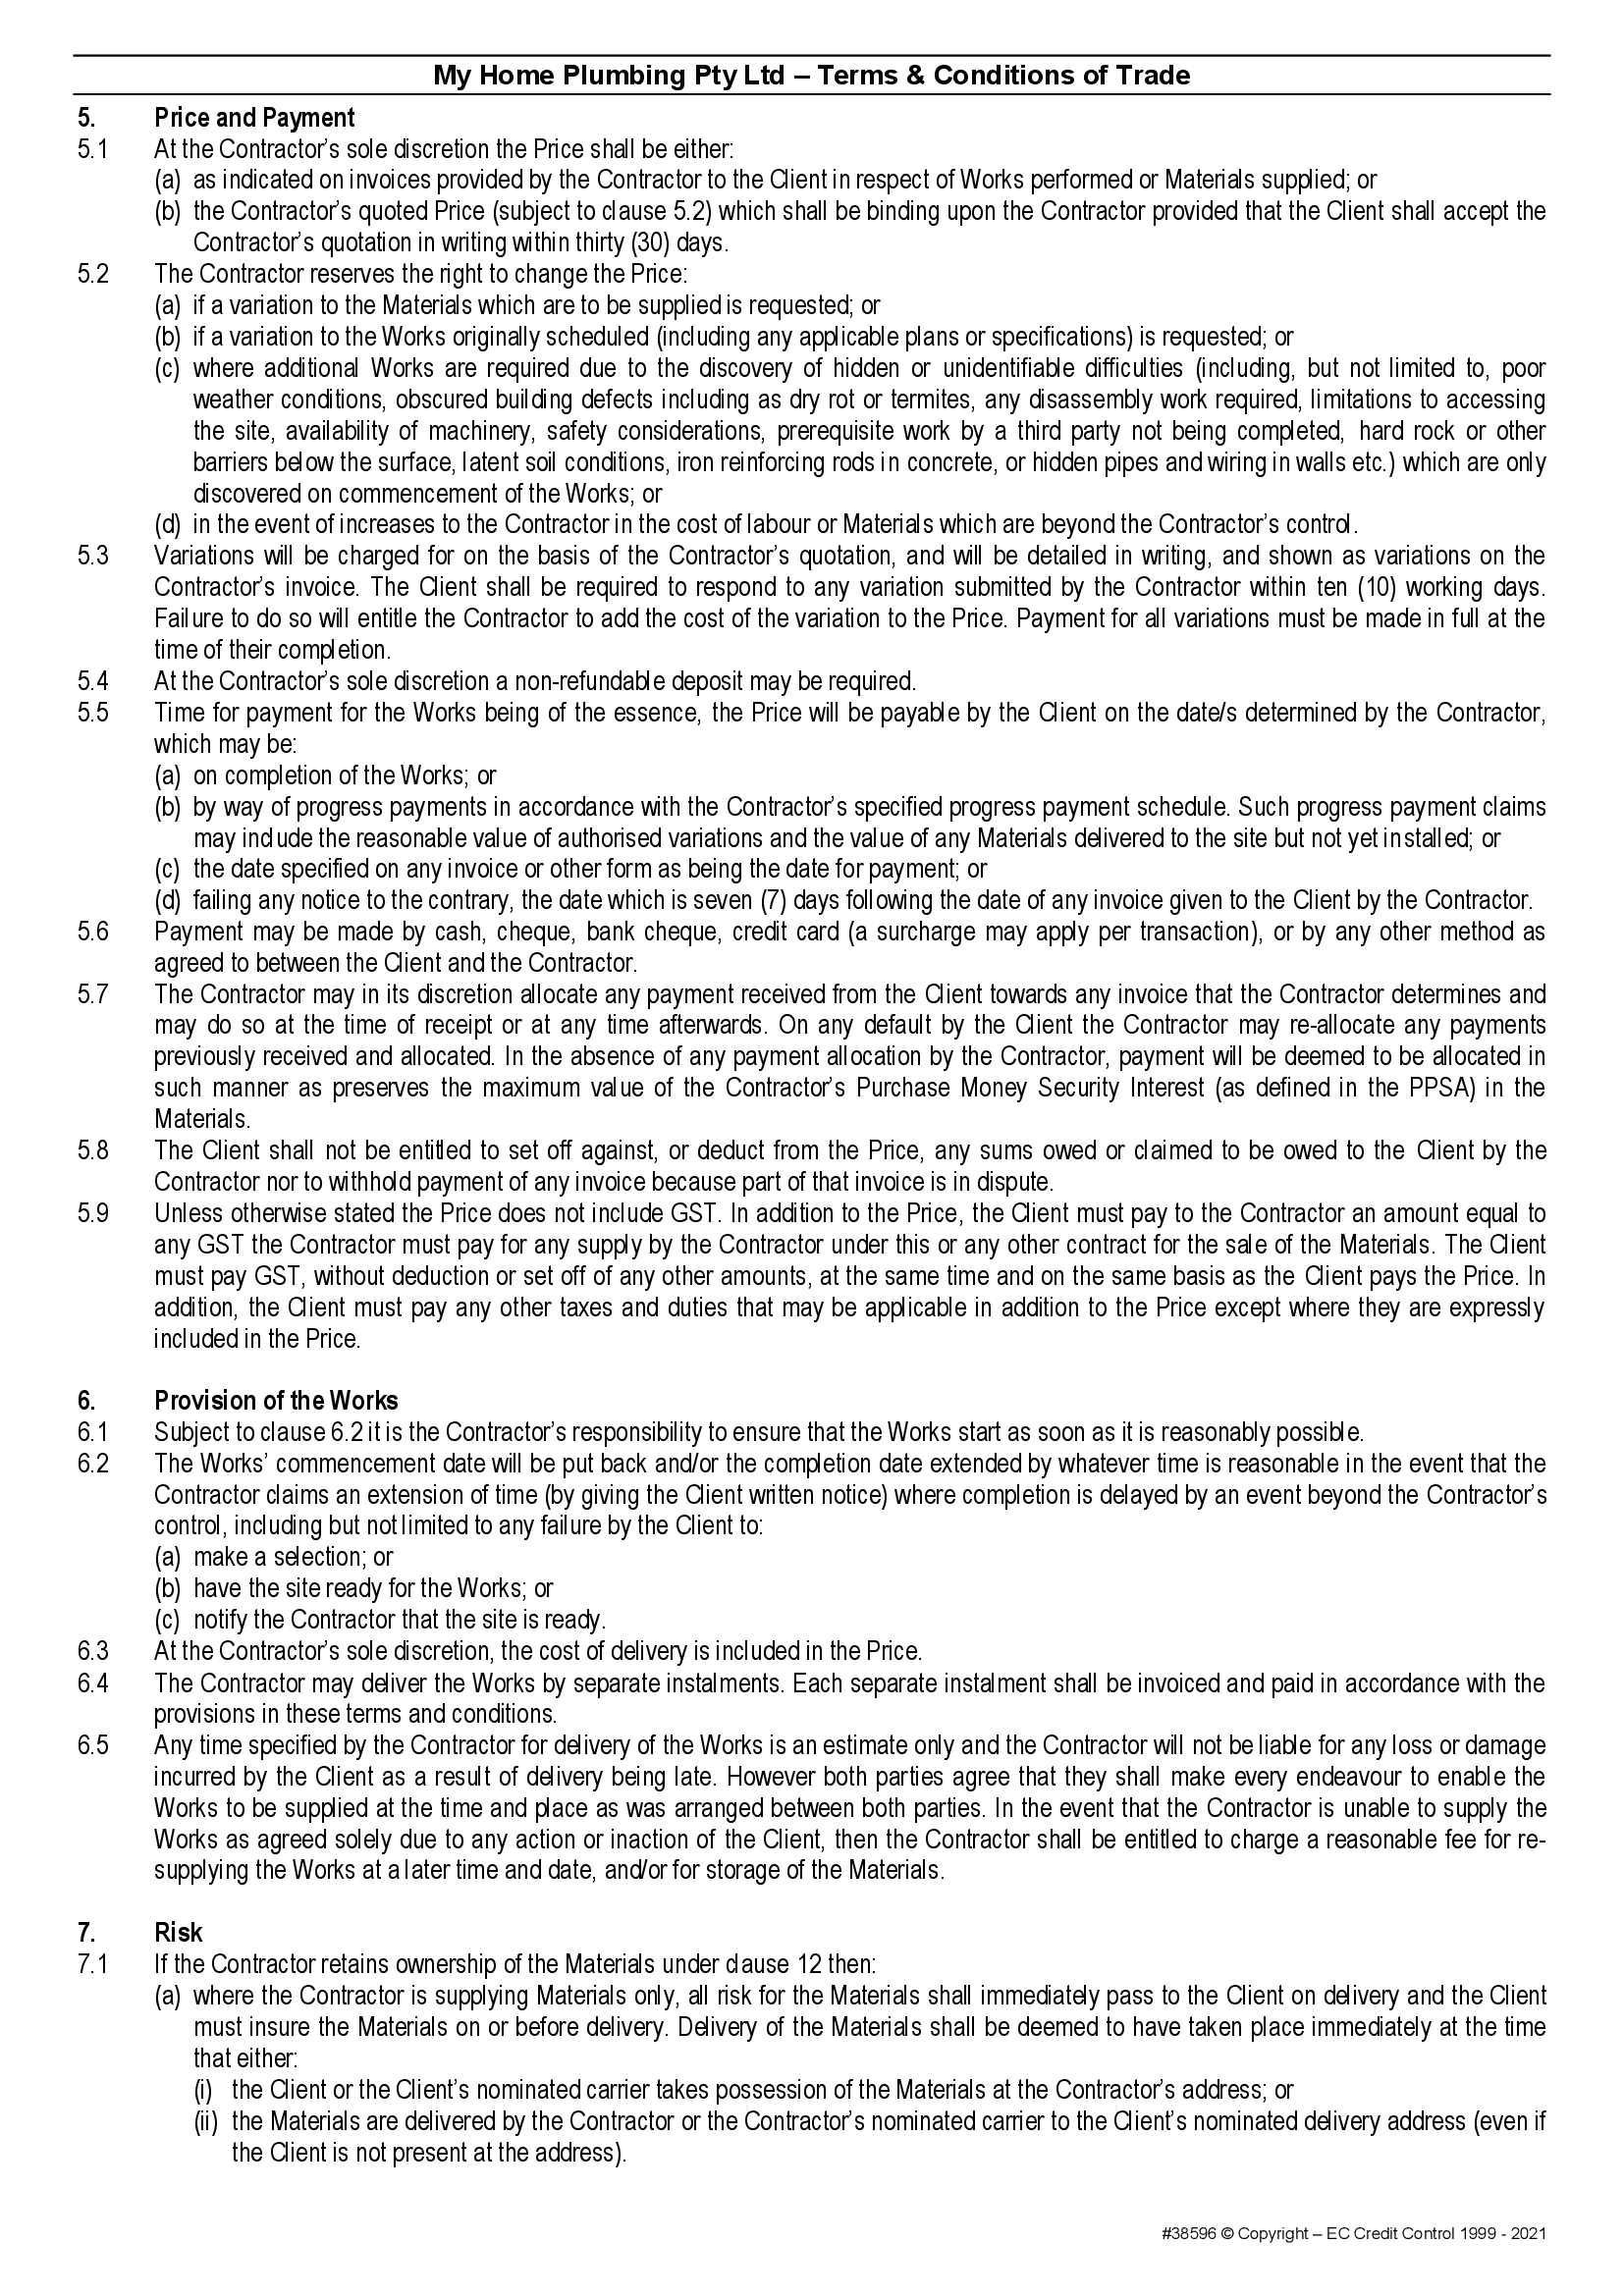 MHP terms and conditions page 2